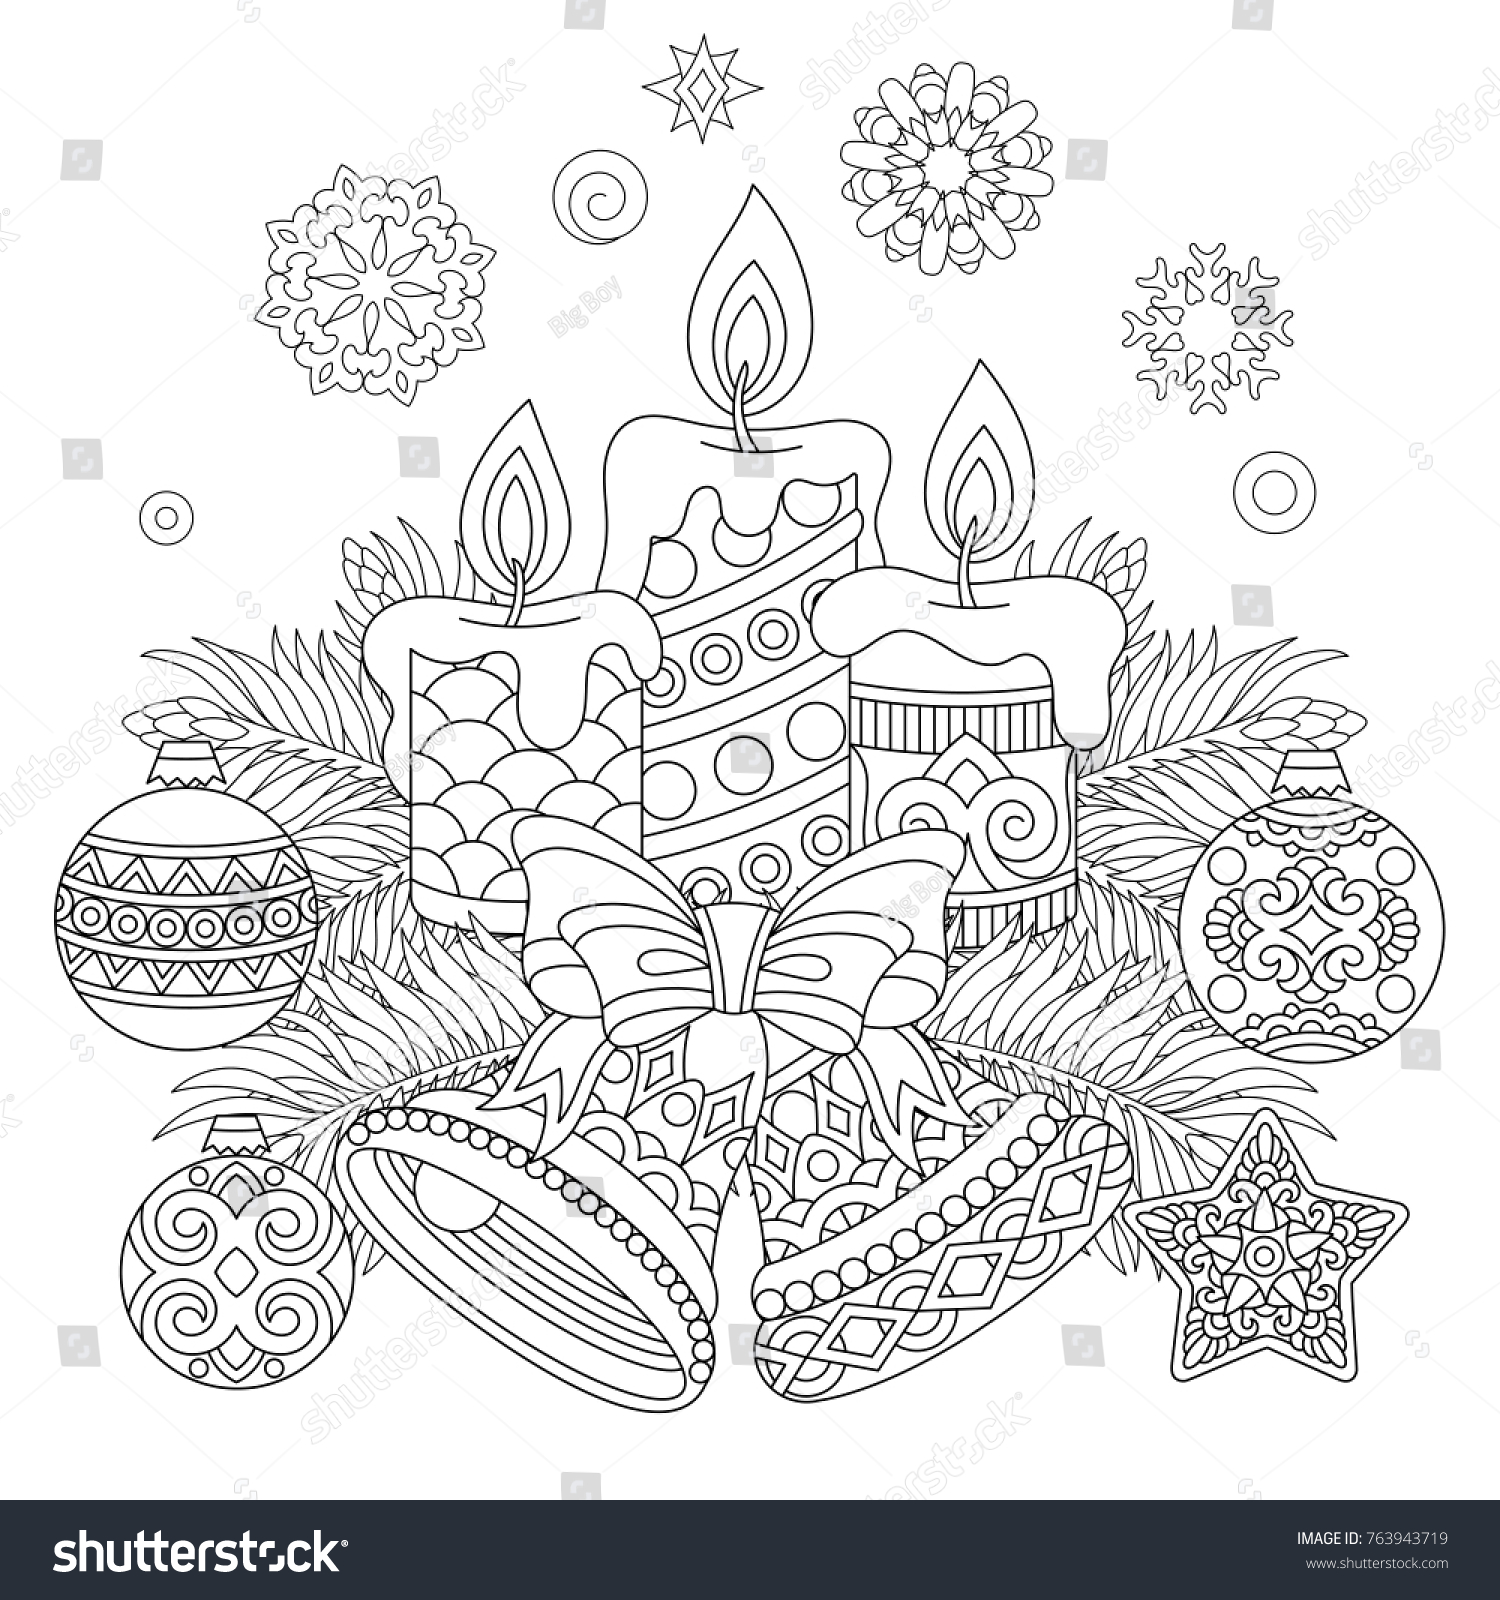 Christmas Coloring Page Holiday Decorations Hanging Stock Vector ...